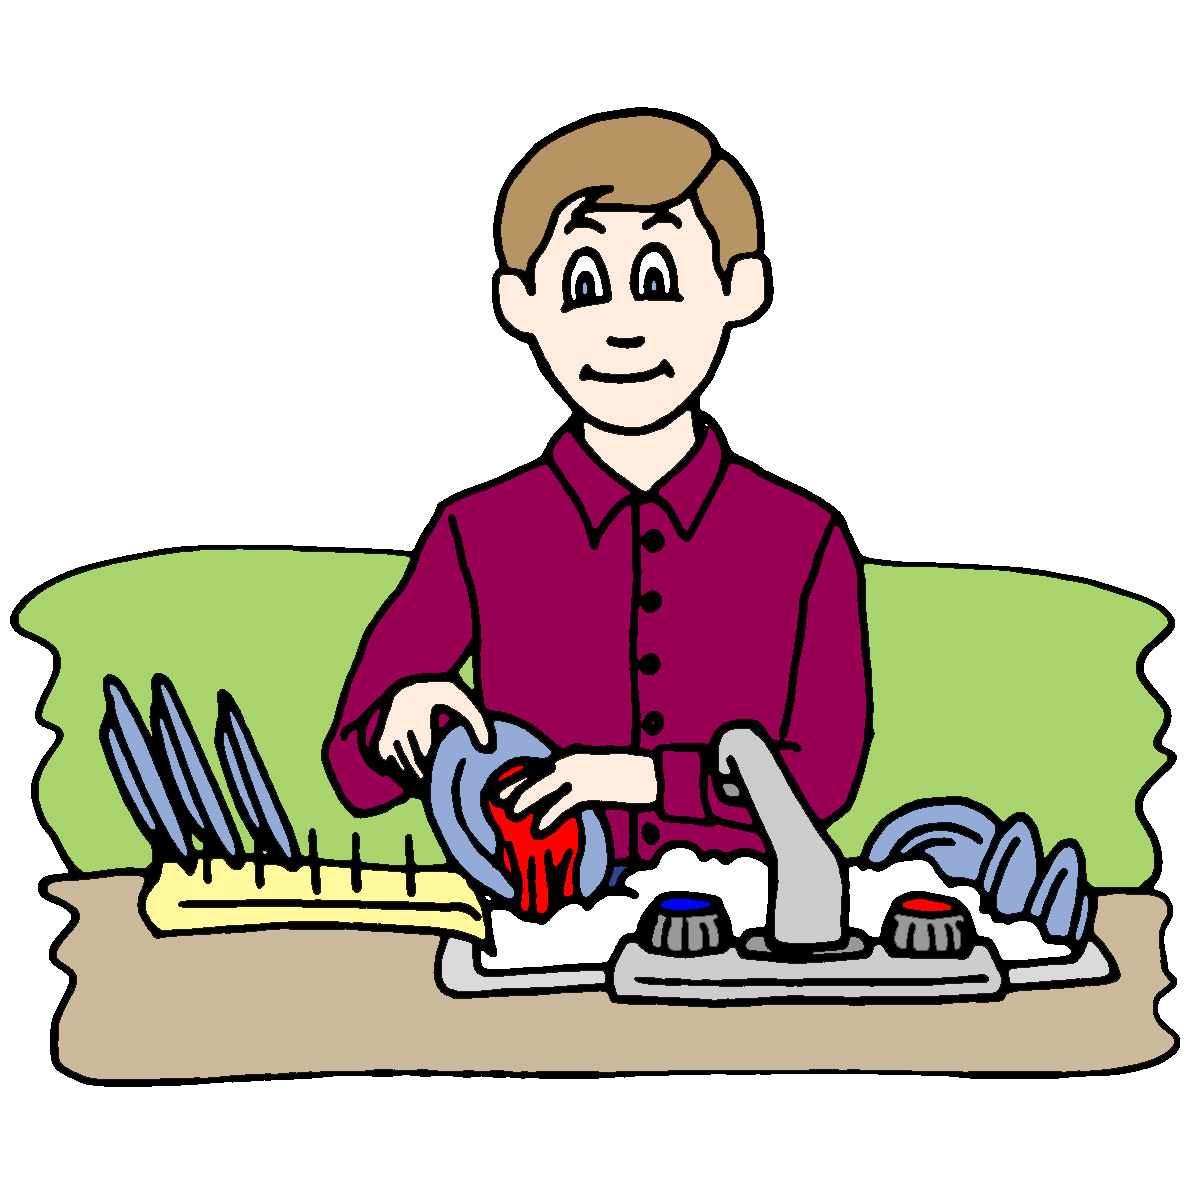 Laundry clipart daily chore. Free chores cliparts download